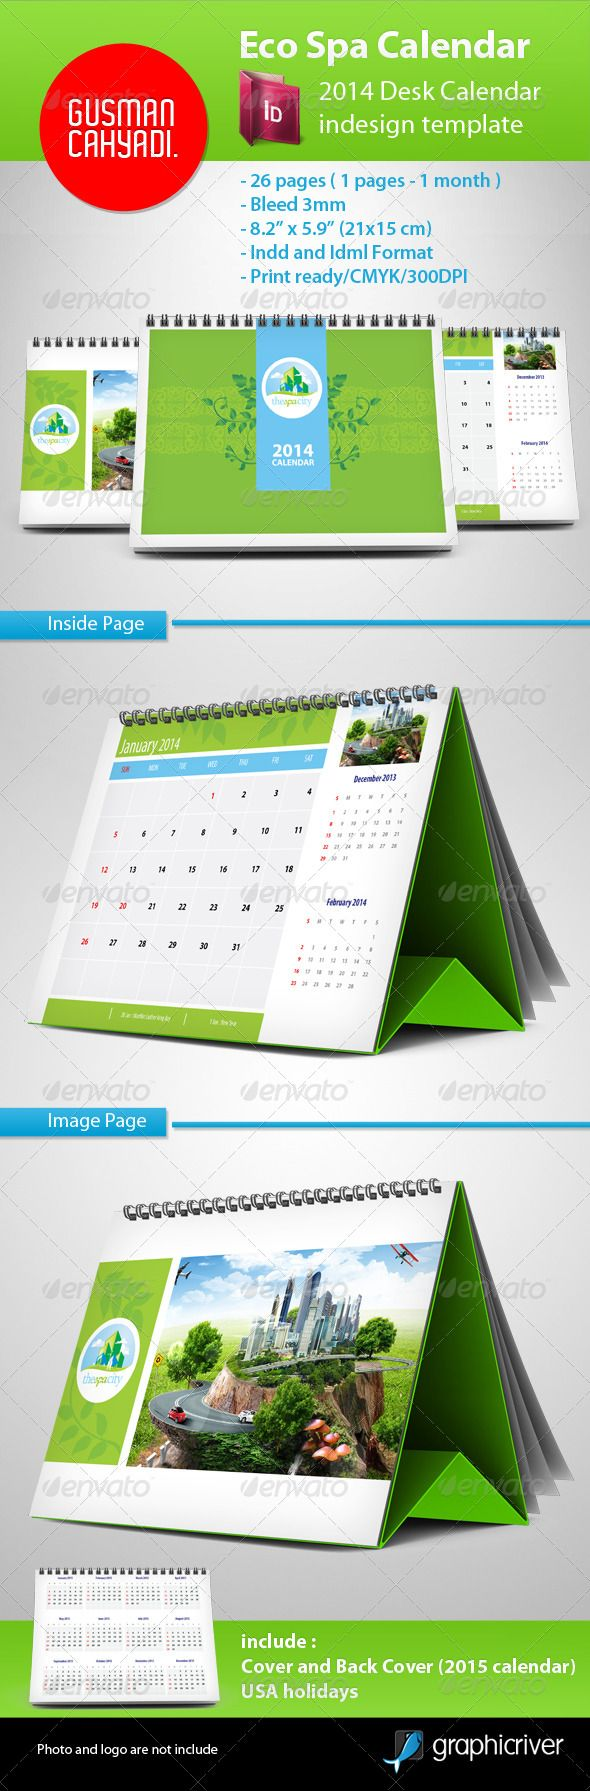 Calendar Ideas For Business : Best images about corporate calendar design on pinterest